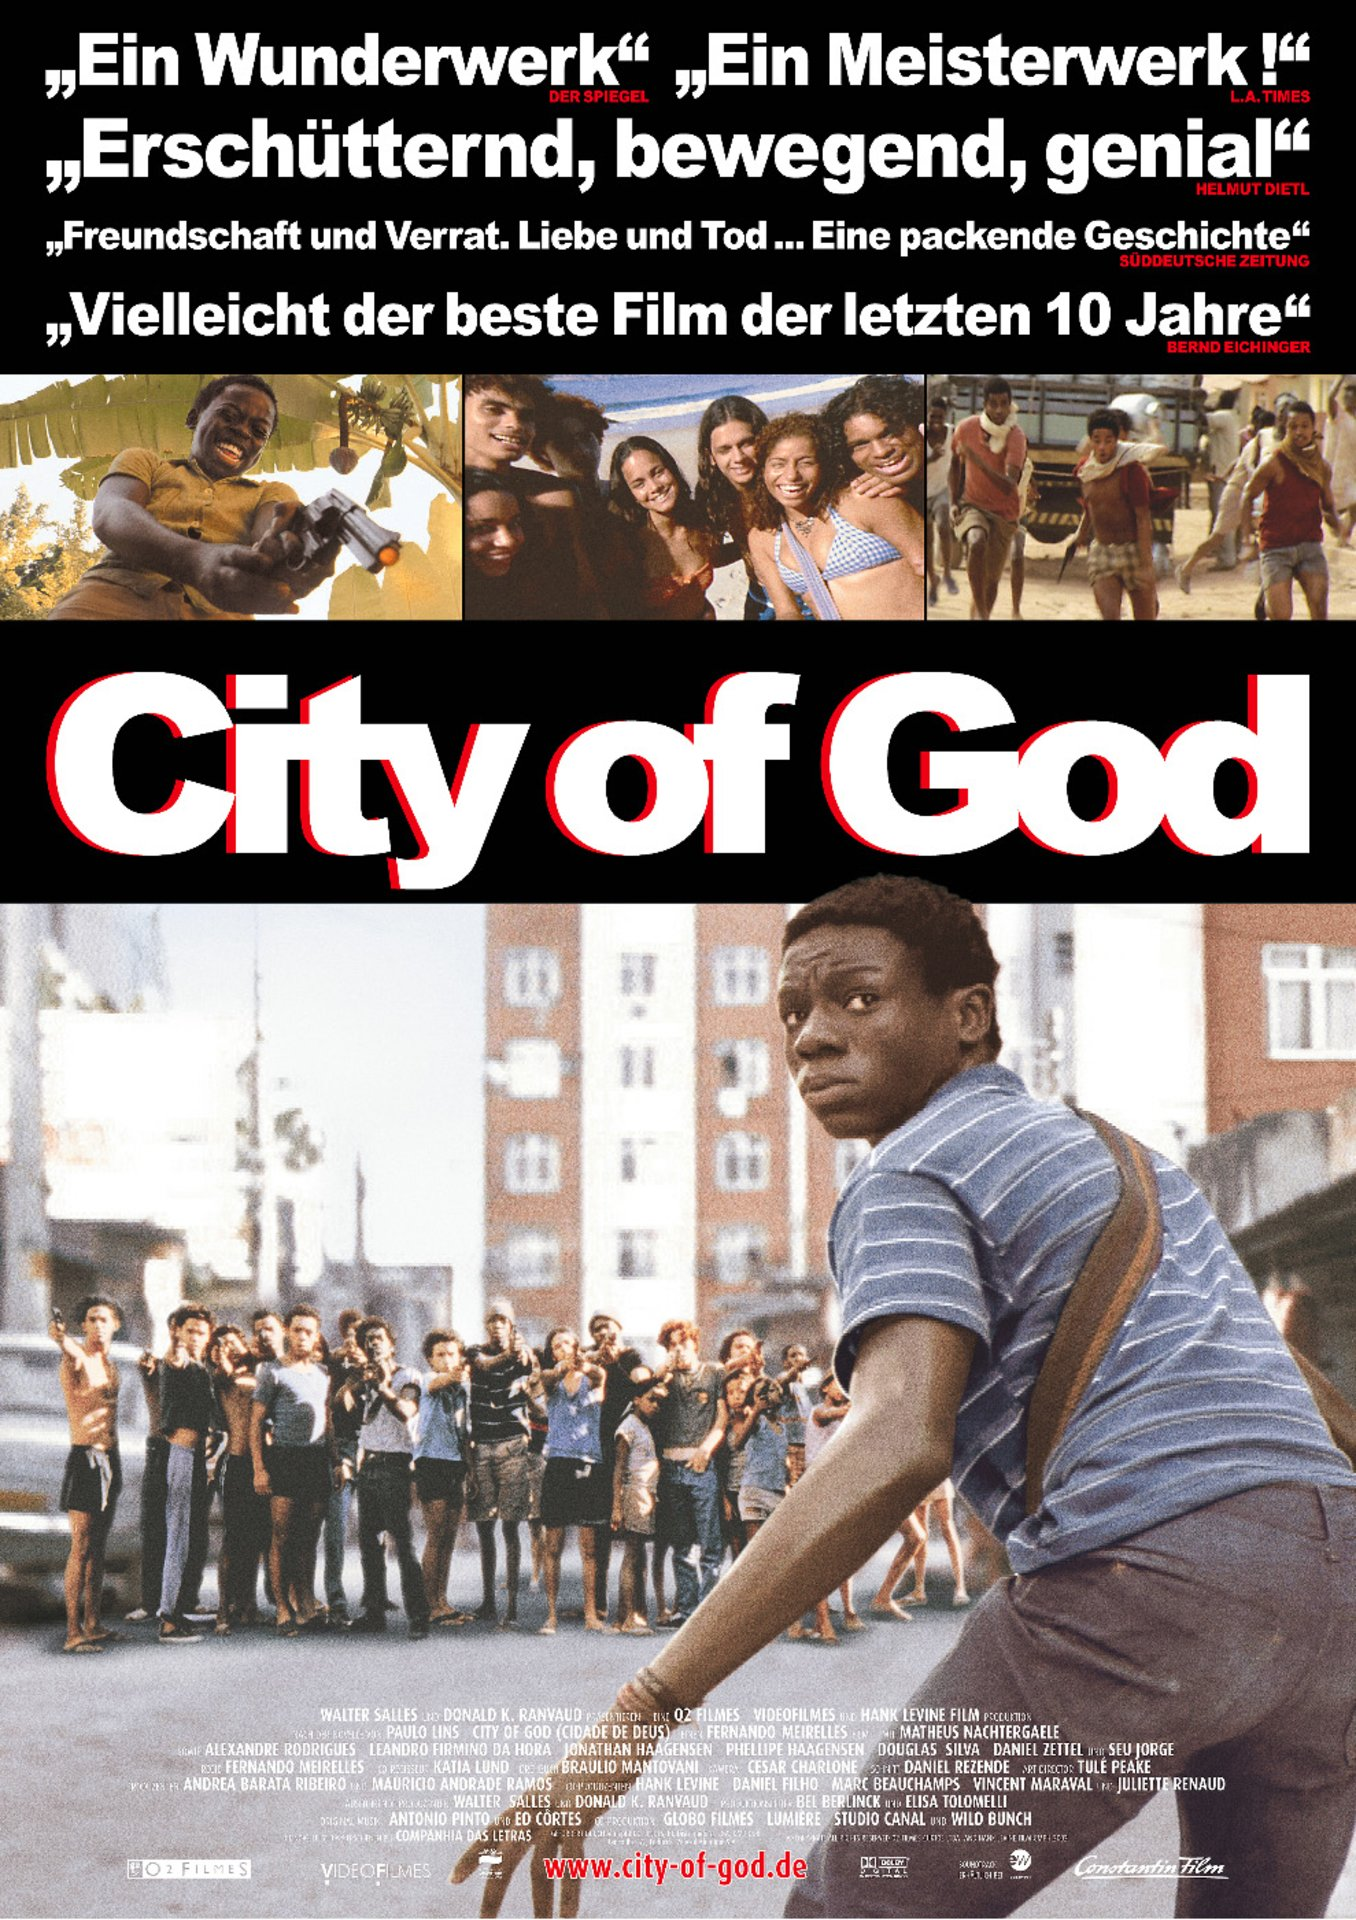 city of god film The story of knockout ned the genre of city of god is listed as a crime drama, there are many other films that share the same tenor of genre as city of god, such as.